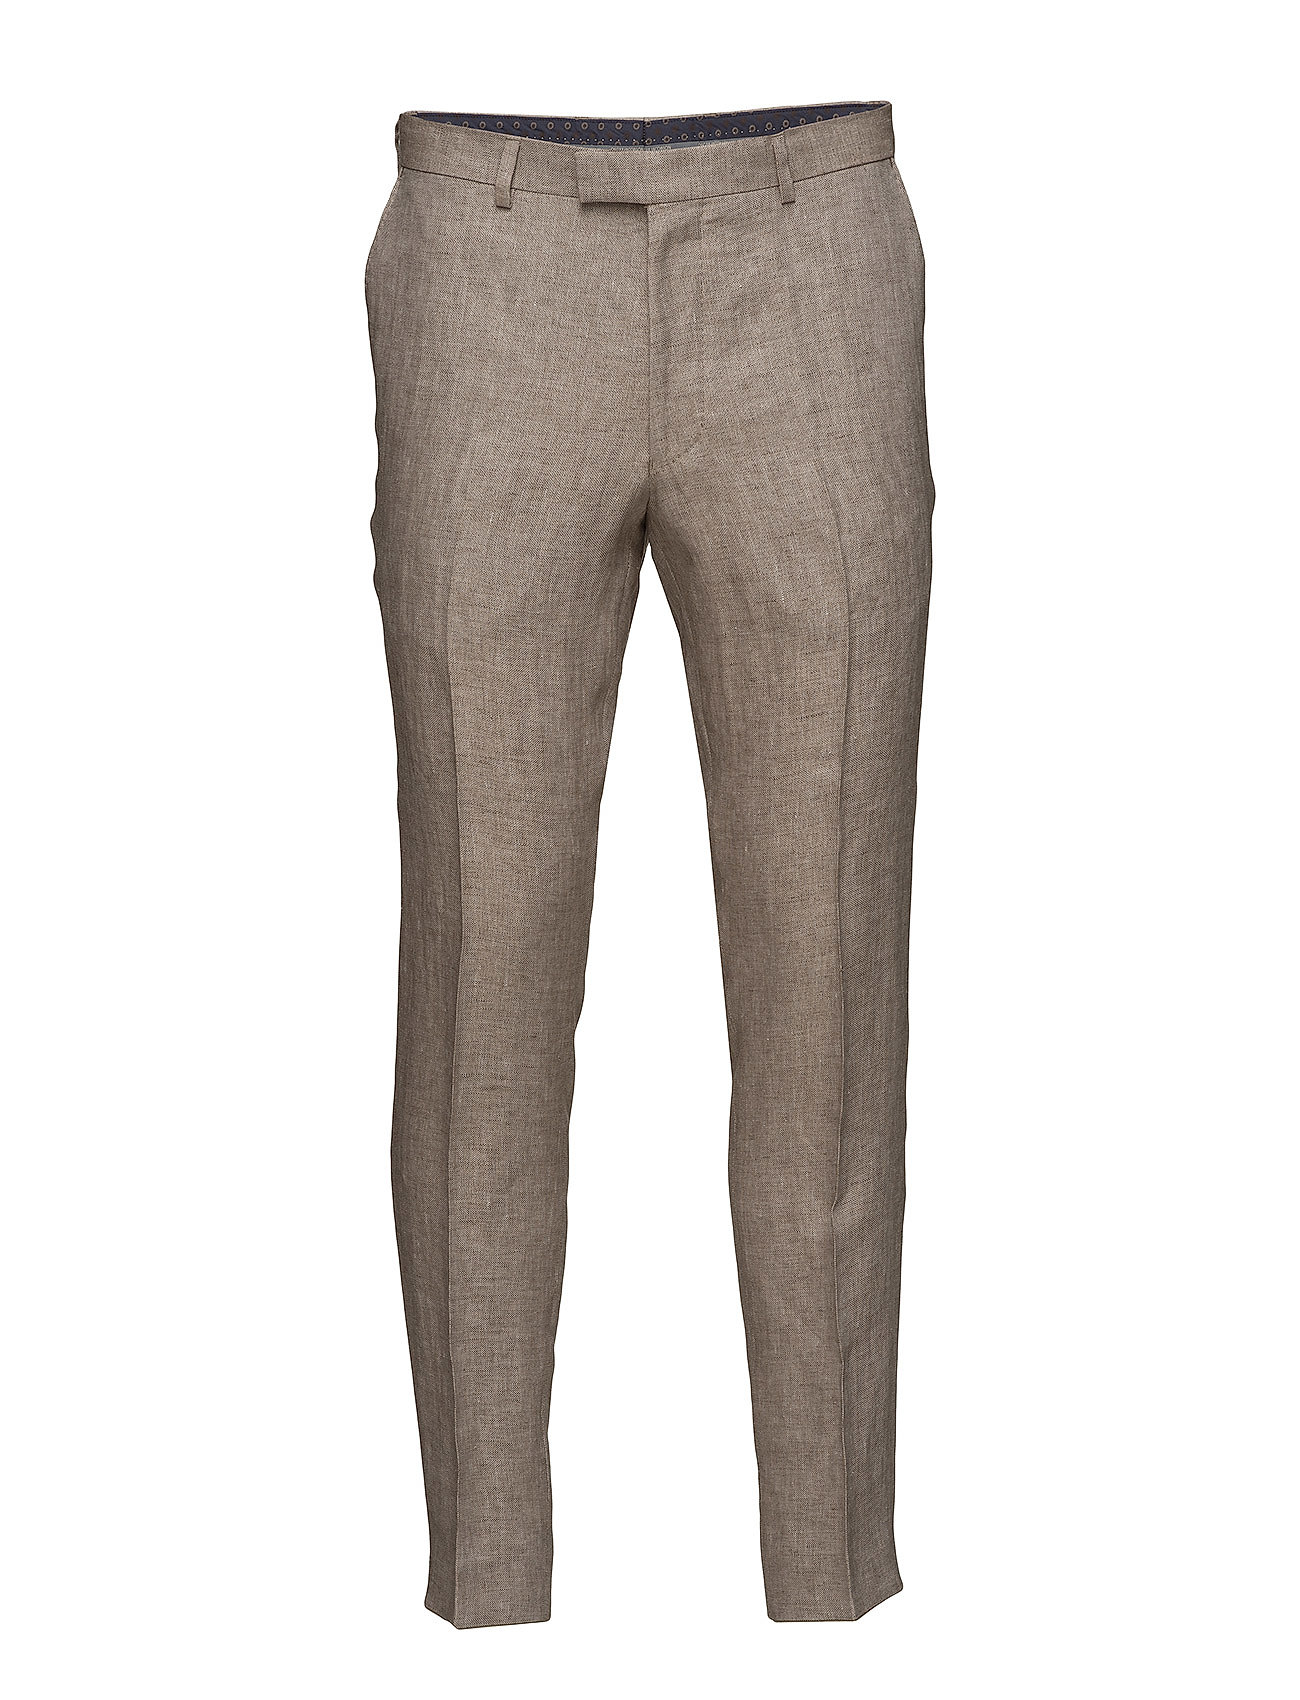 Oscar Jacobson Denz Trousers - 470 - LIGHT BEIGE